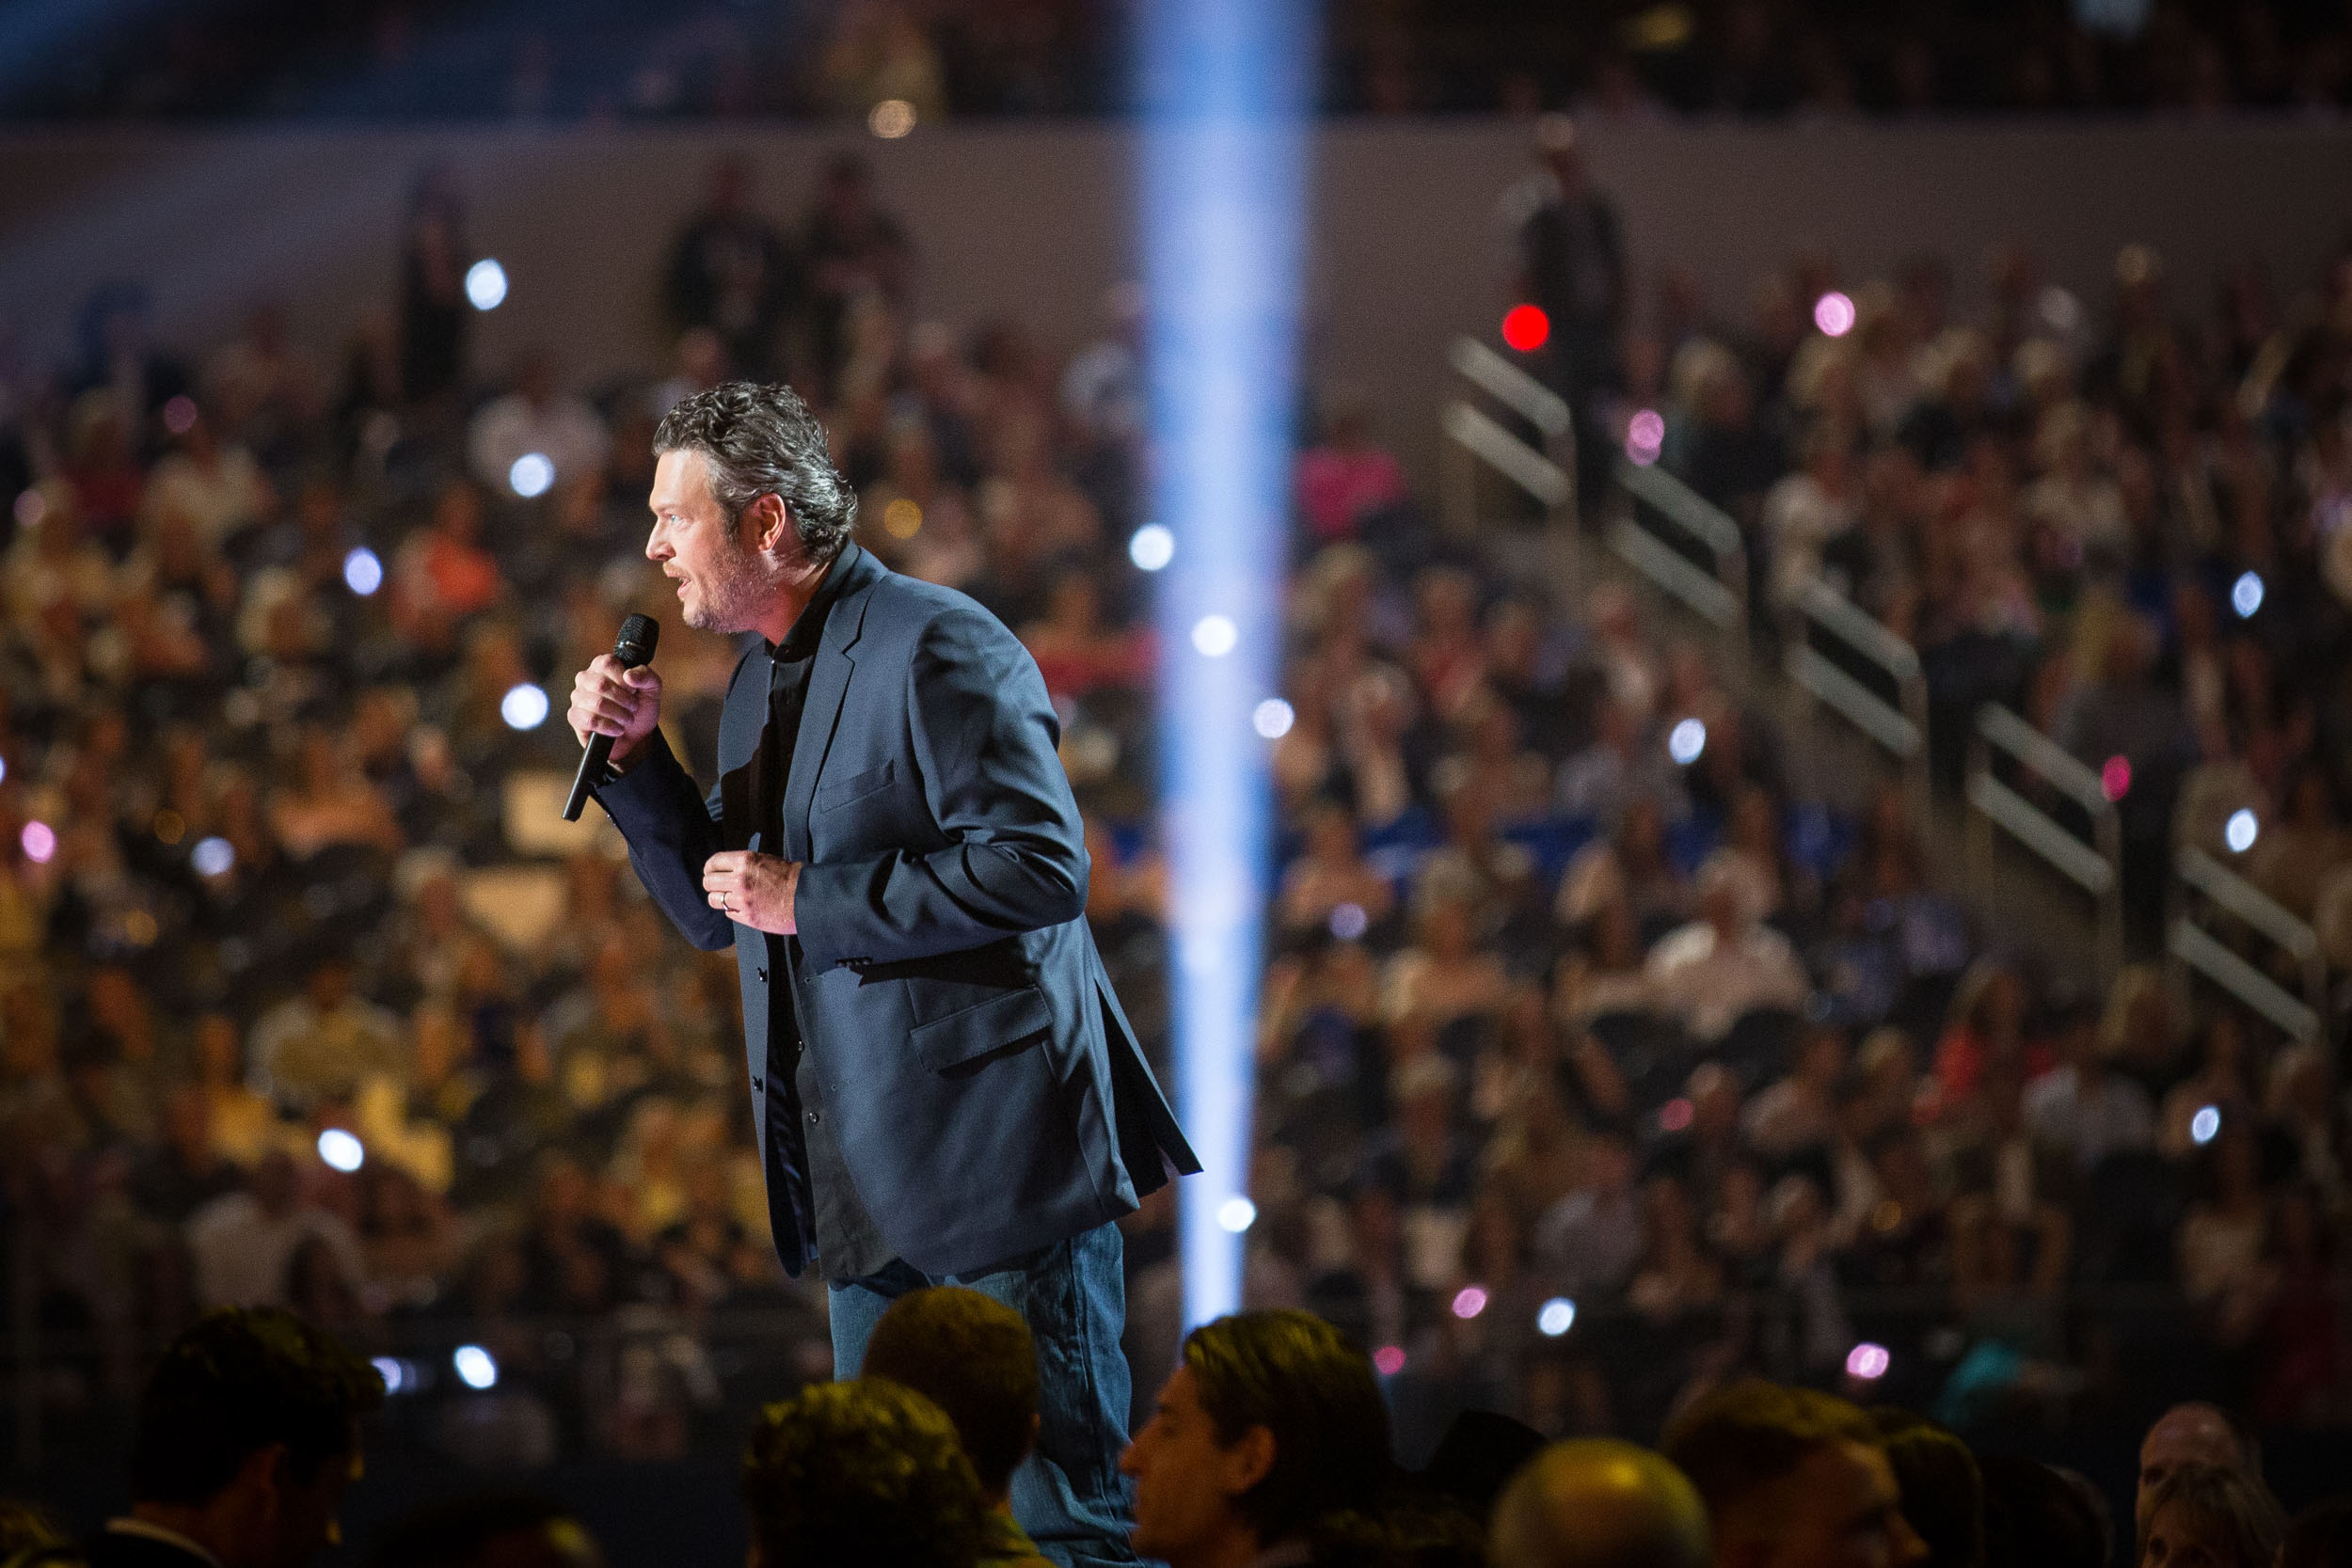 Florida Photography |Blake Shelton - Music and Celebrity | Steven Martine